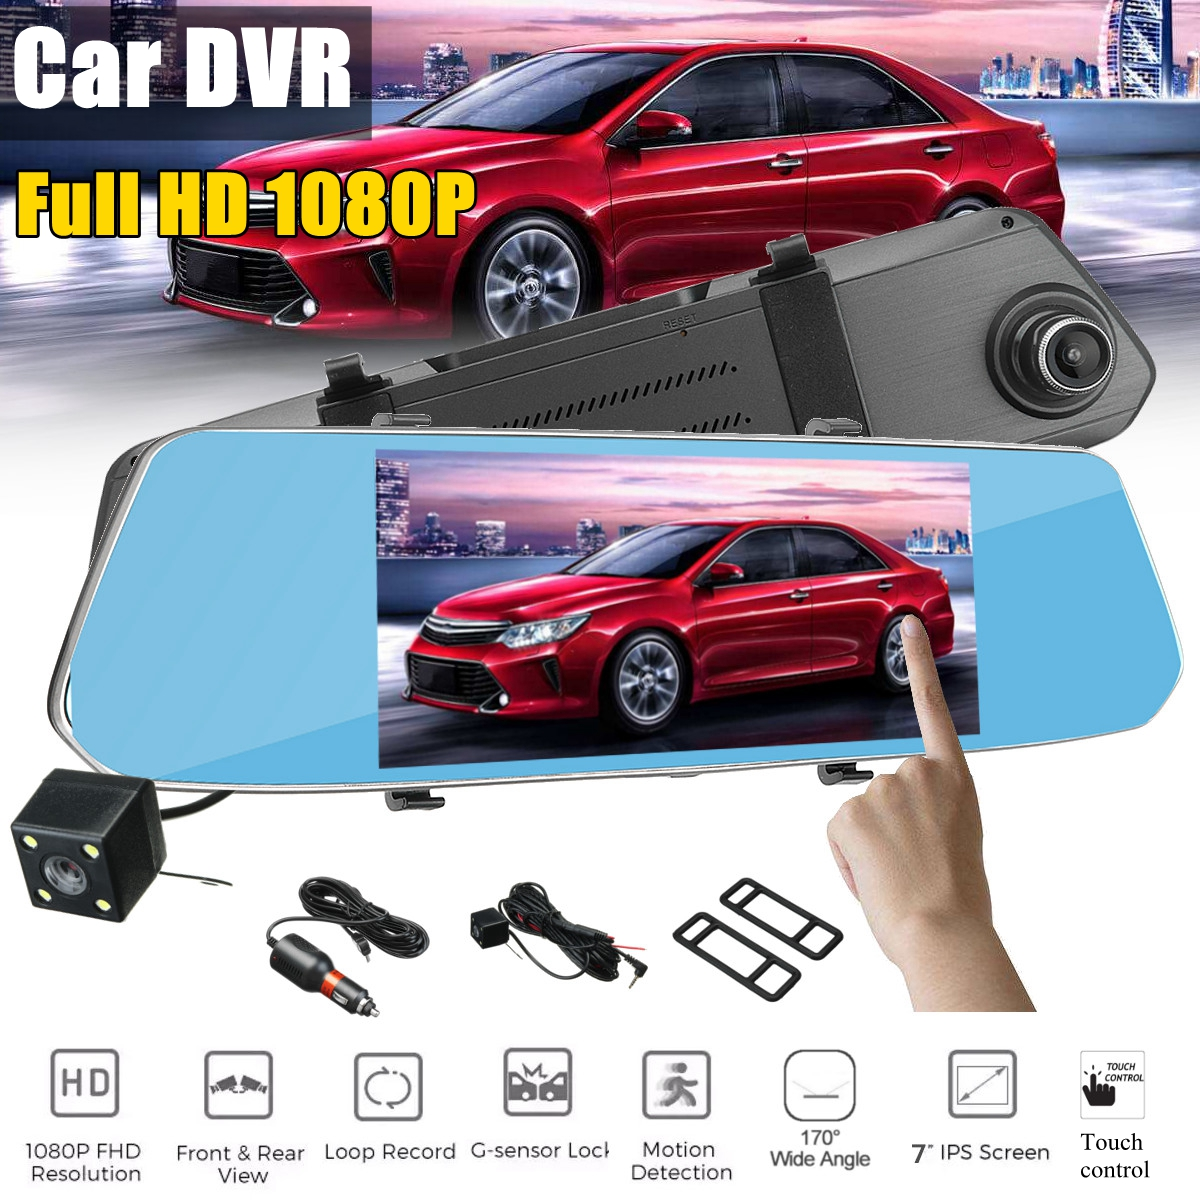 HD 1080P 2.5D Screen Touch Display Dual Lens 7 Inch Rearview Mirror Camera Recorder Car DVR Dash Cam G-sensor автомобильный видеорегистратор excedd hd 2 7 hd 1080p dvr g